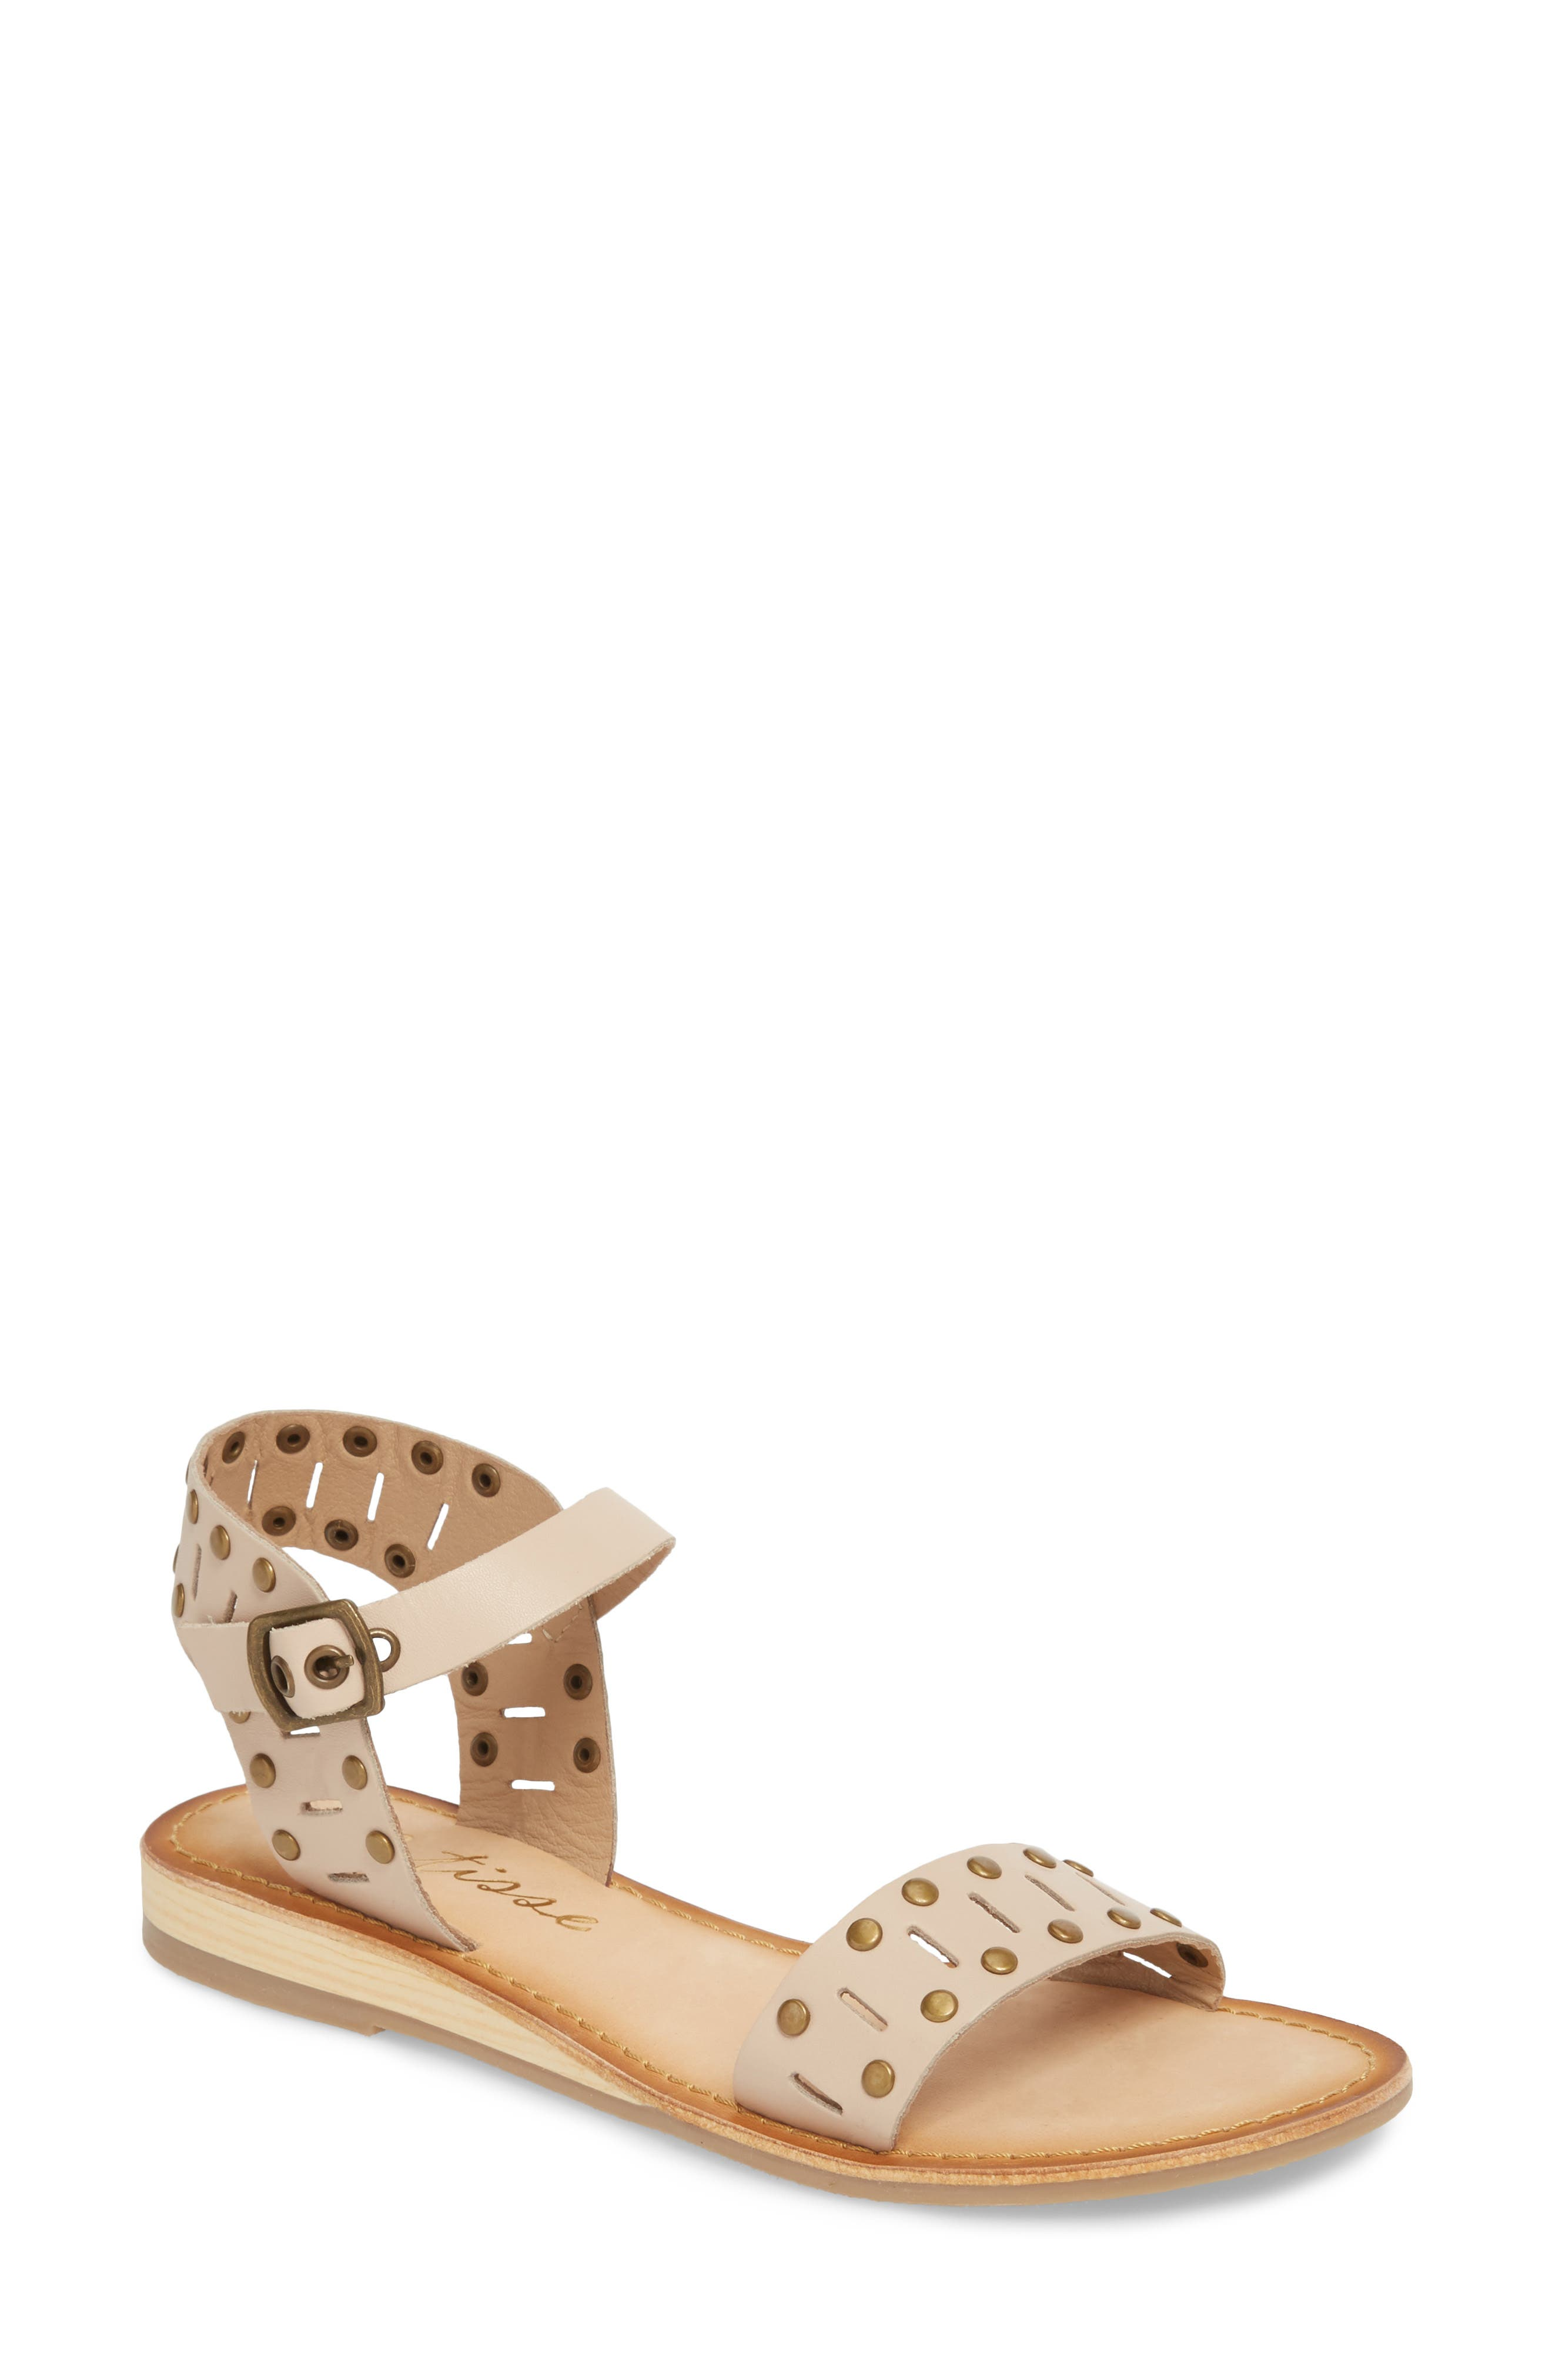 Ravenna Quarter Strap Sandal,                         Main,                         color, NATURAL LEATHER